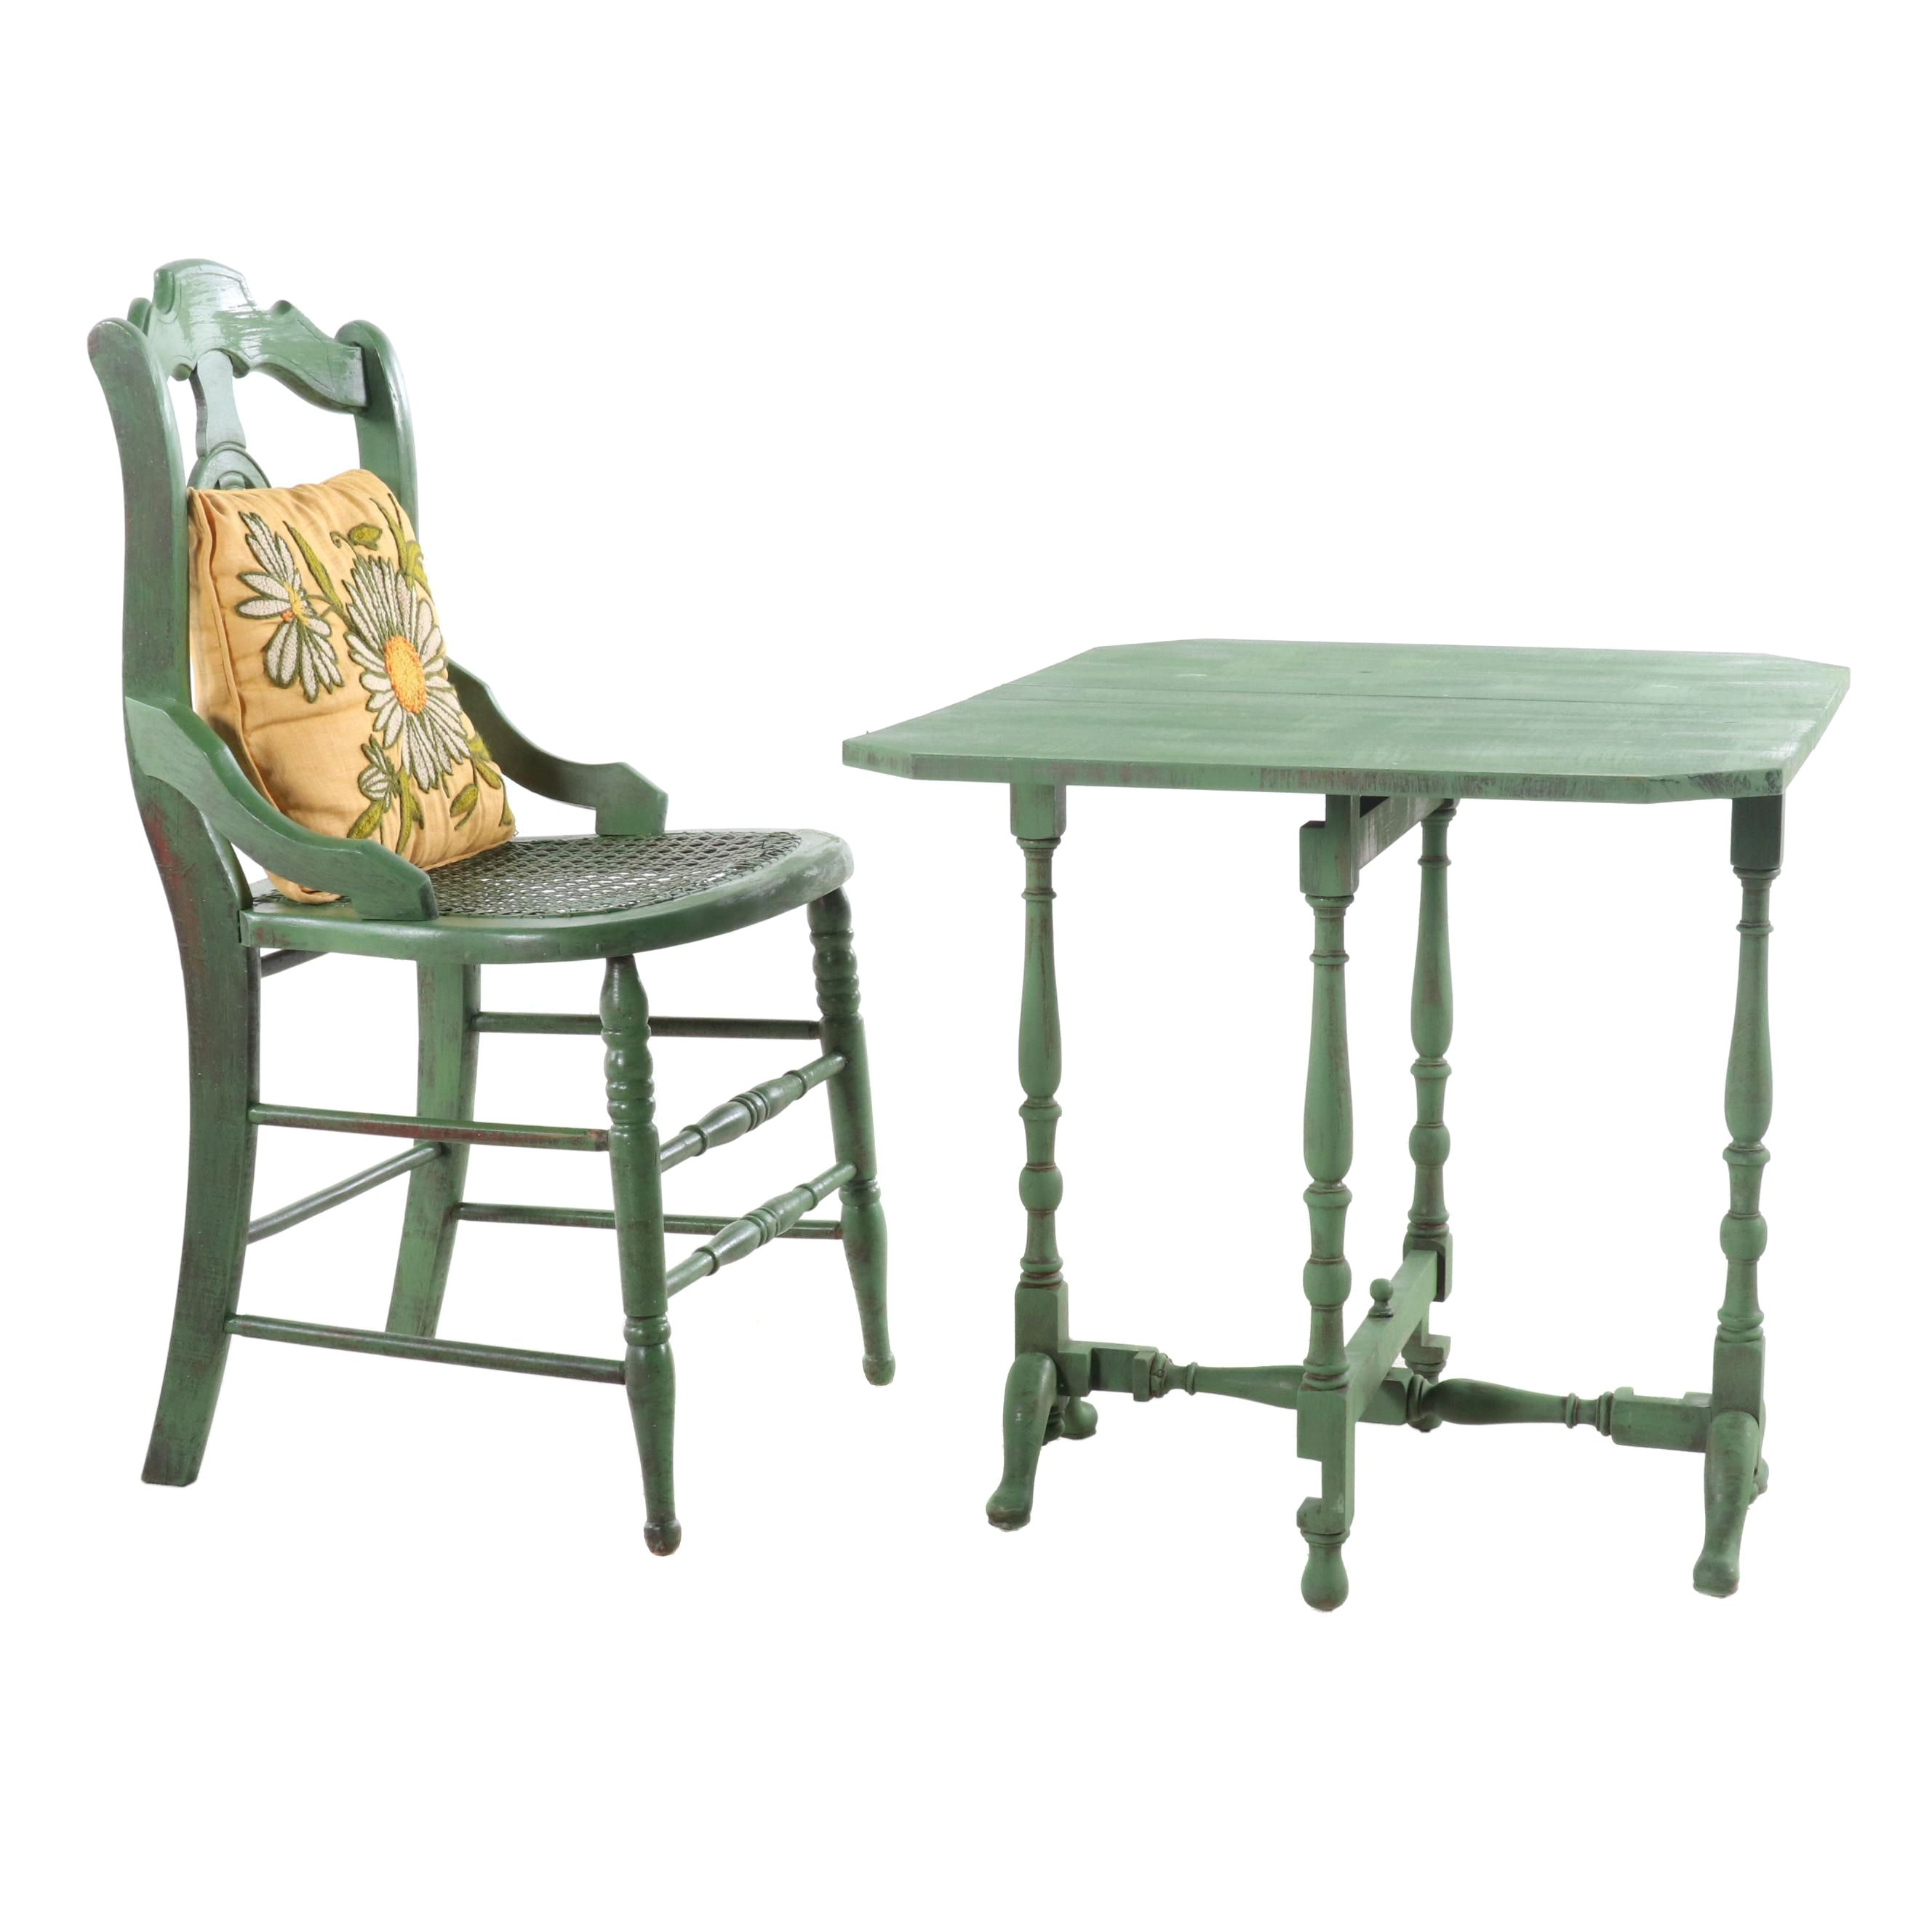 Painted Caned Chair and Gate Leg Table, Early 20th Century